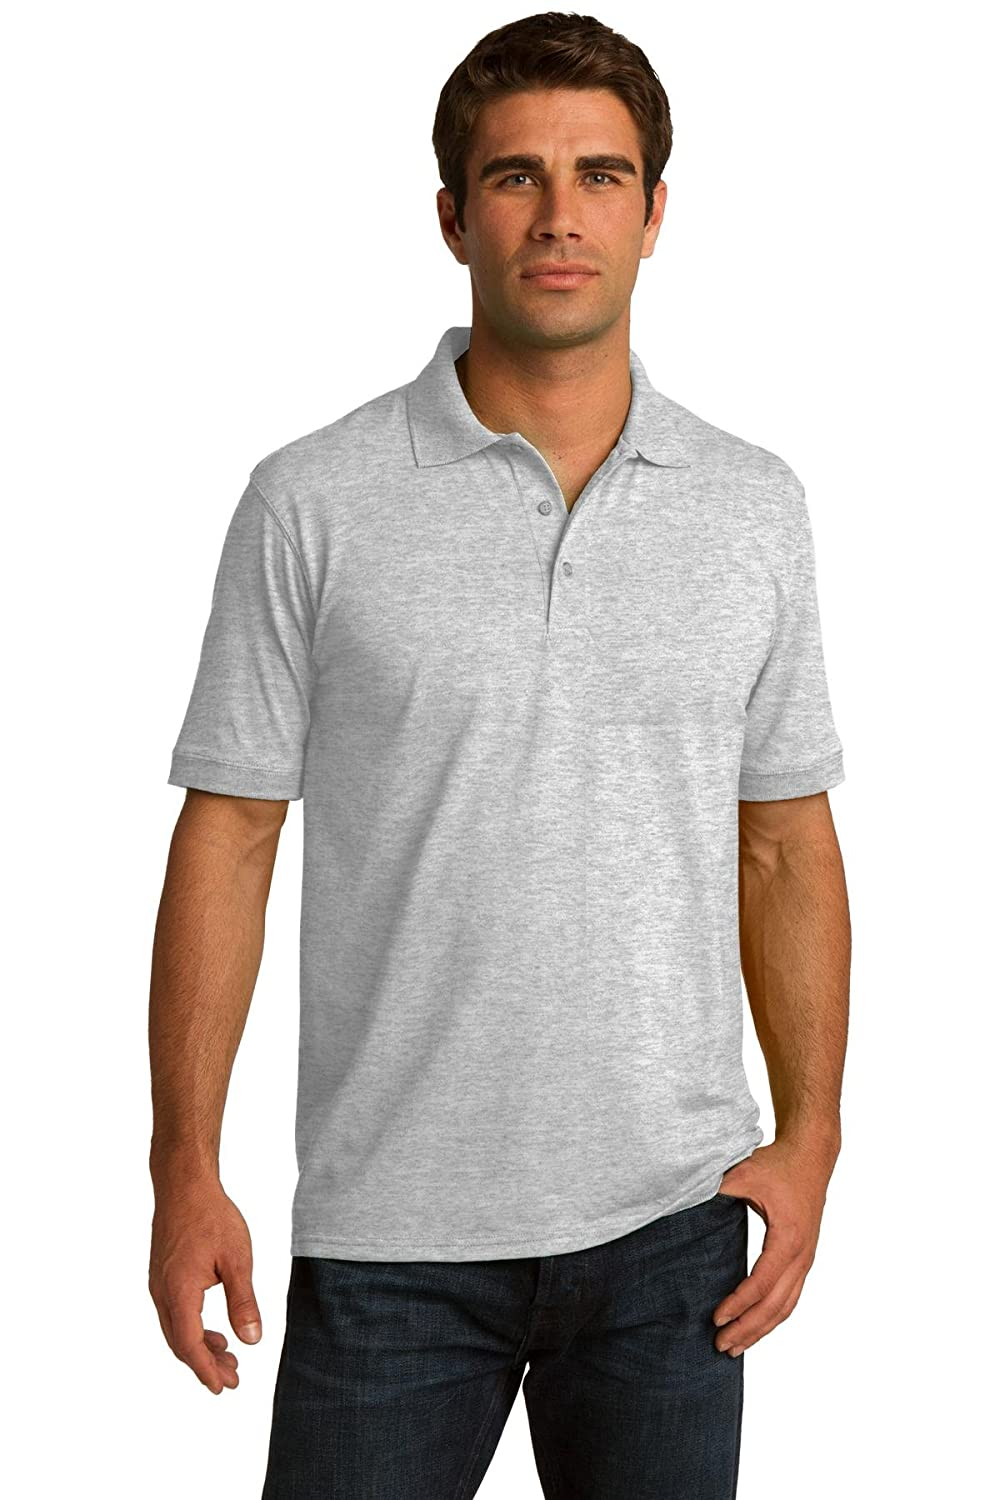 Port Company Tall 5 5 Ounce Jersey Knit Polo Kp55T Athletic Heather